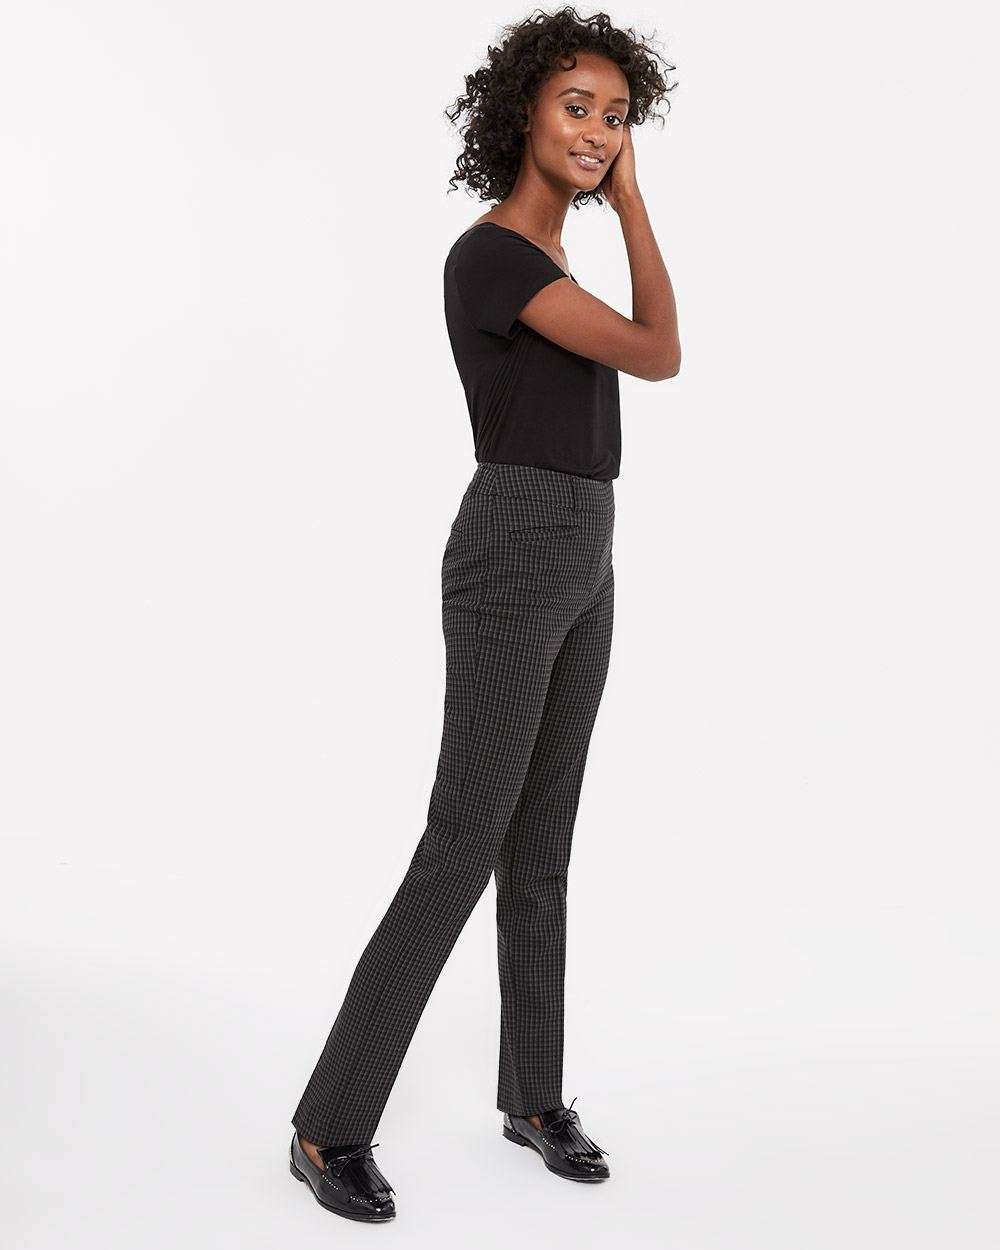 The Tall Iconic Straight Leg Pattern Pants